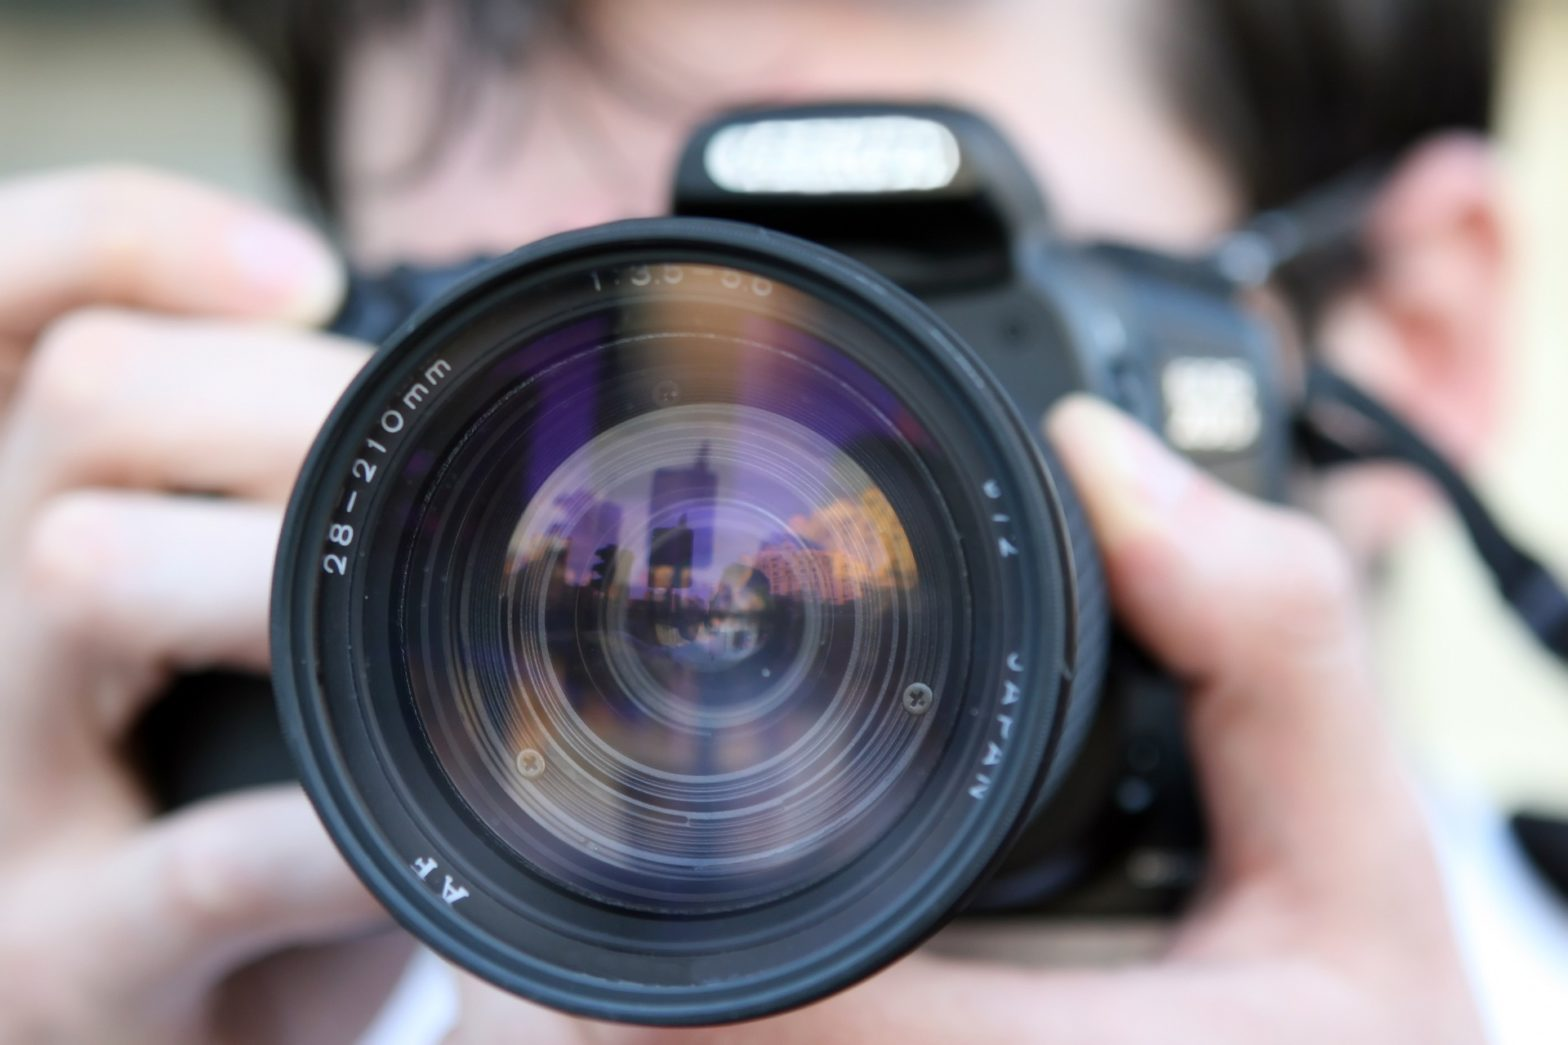 Superb Article About Photography That Will Really Educate You